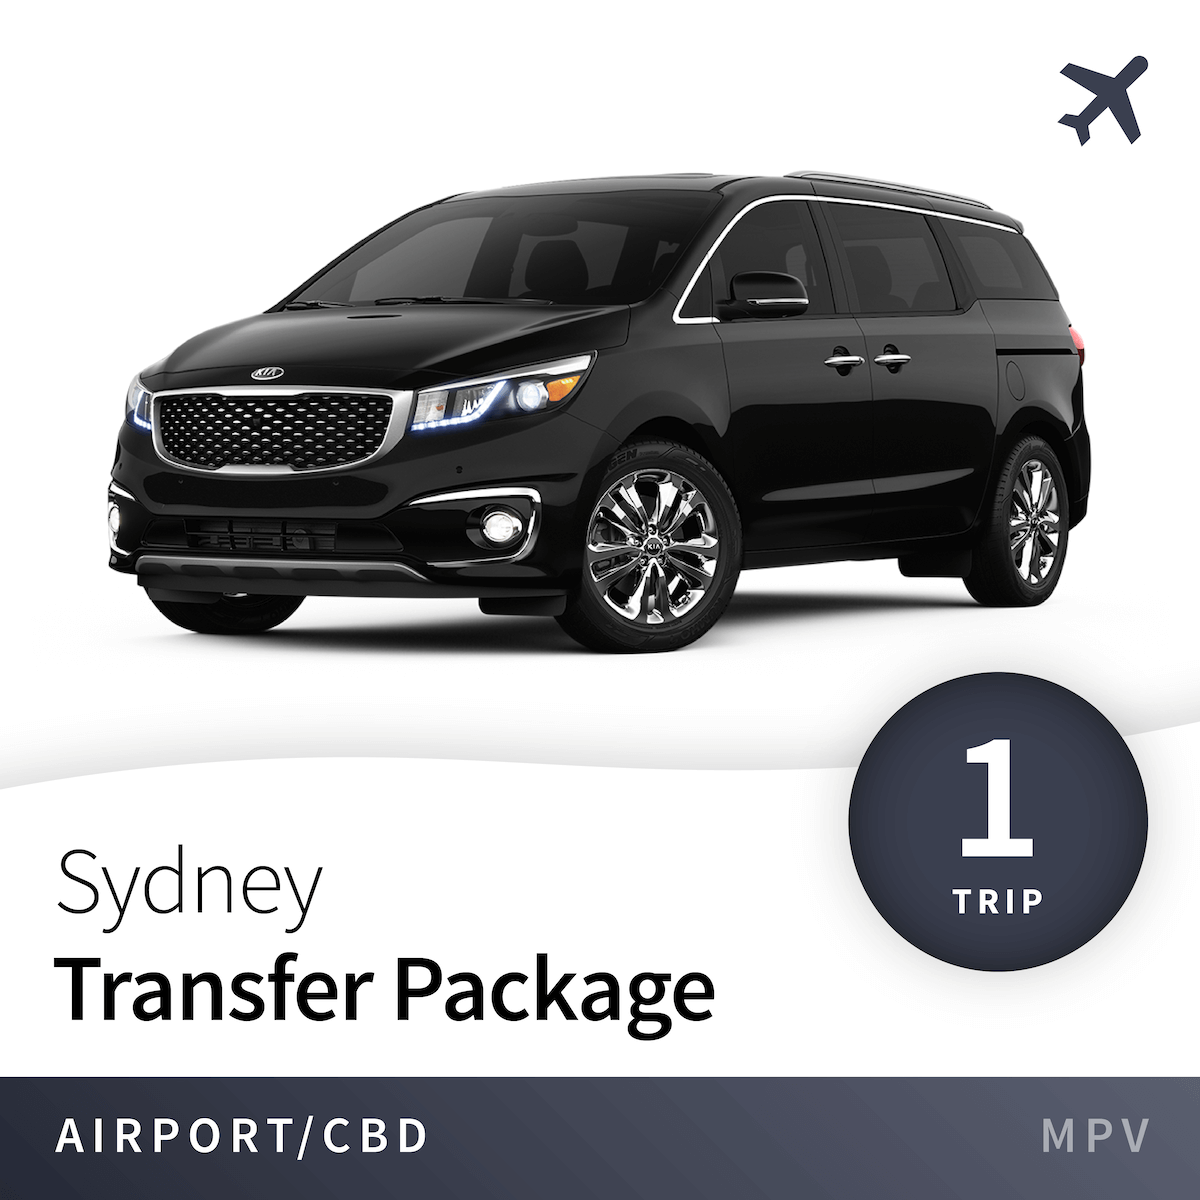 Sydney Airport Transfer Package - MPV (1 Trip) 8